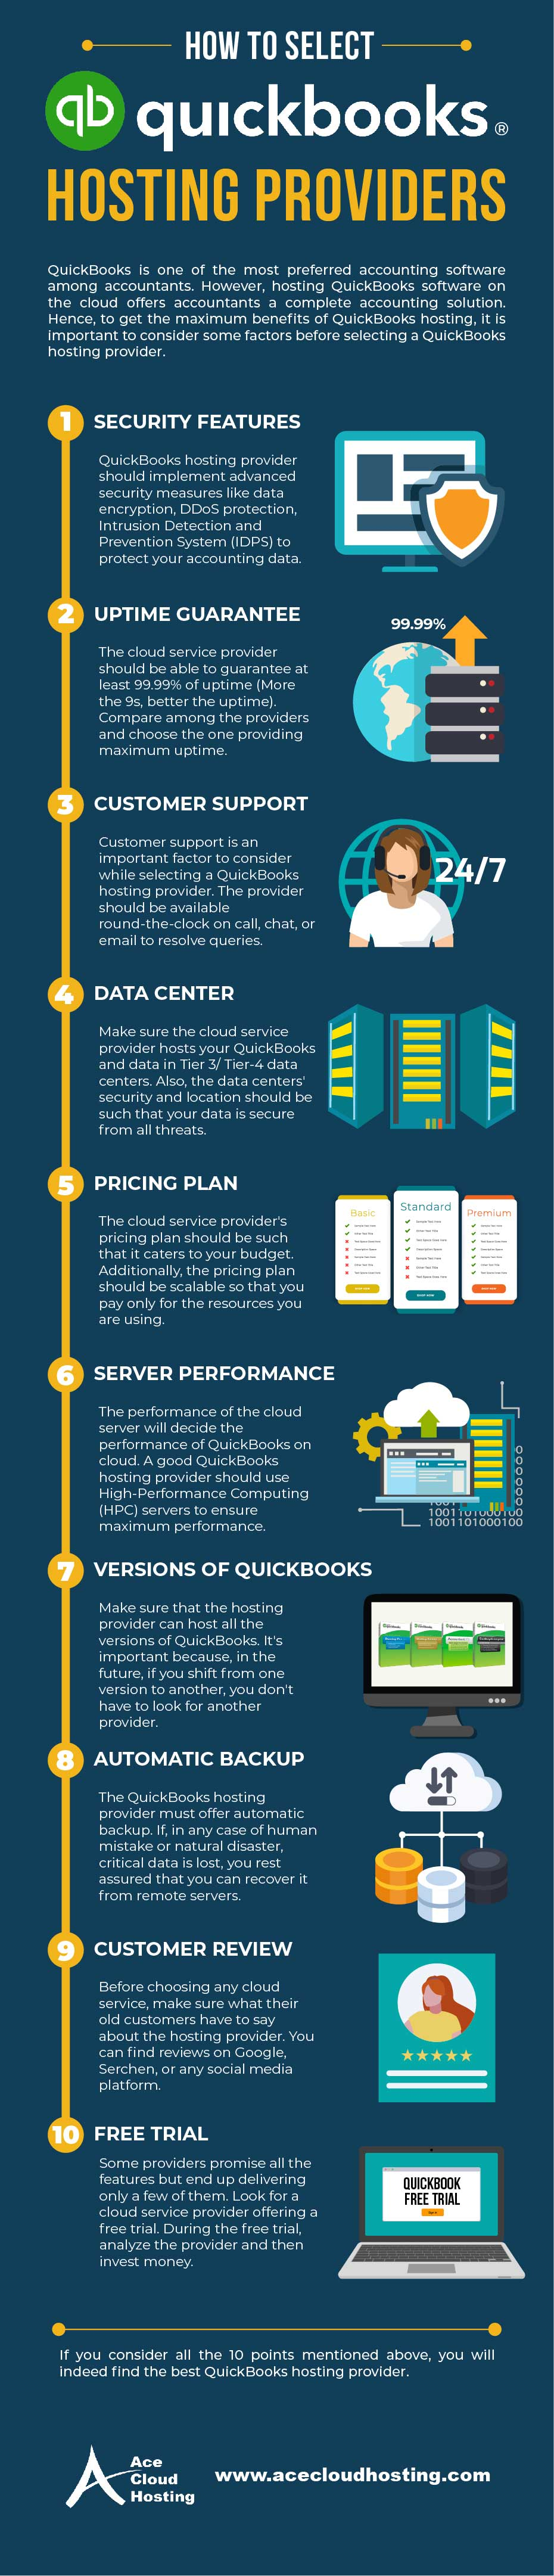 2-Minute Checklist for Choosing the Right QuickBooks Hosting Provider Infographic